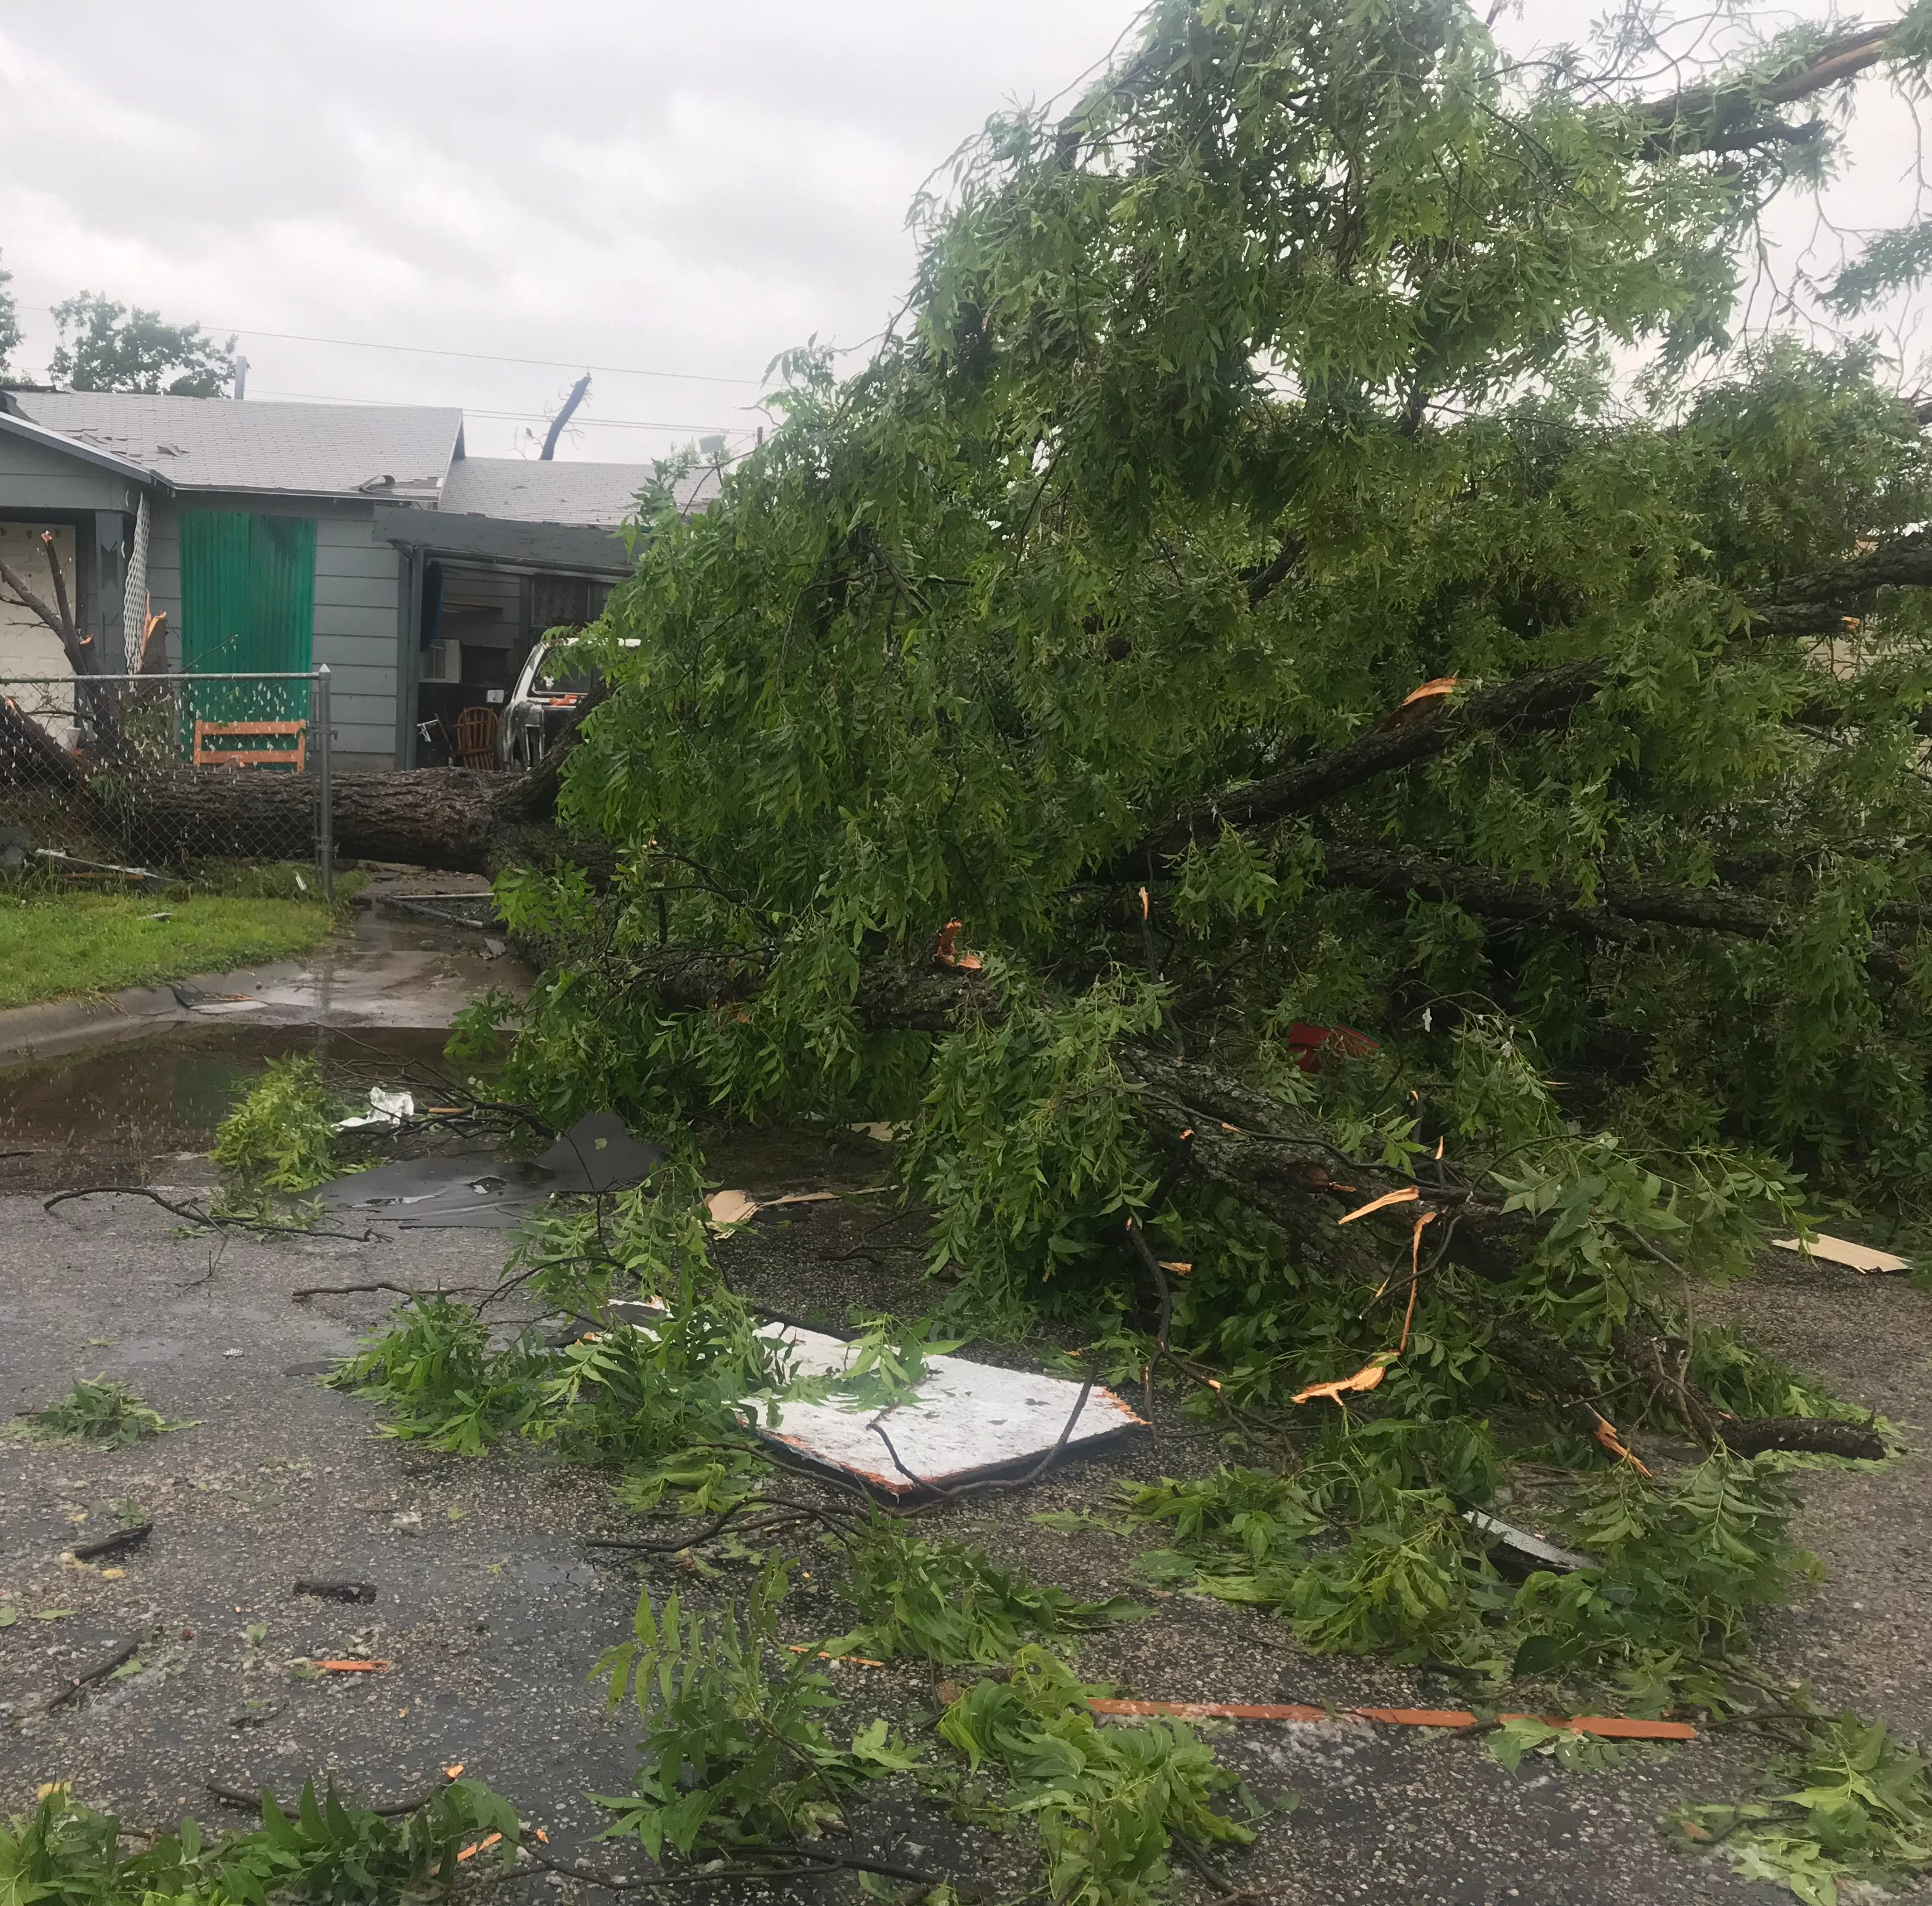 City Council approves emergency relief for Bradford residents hit by tornado